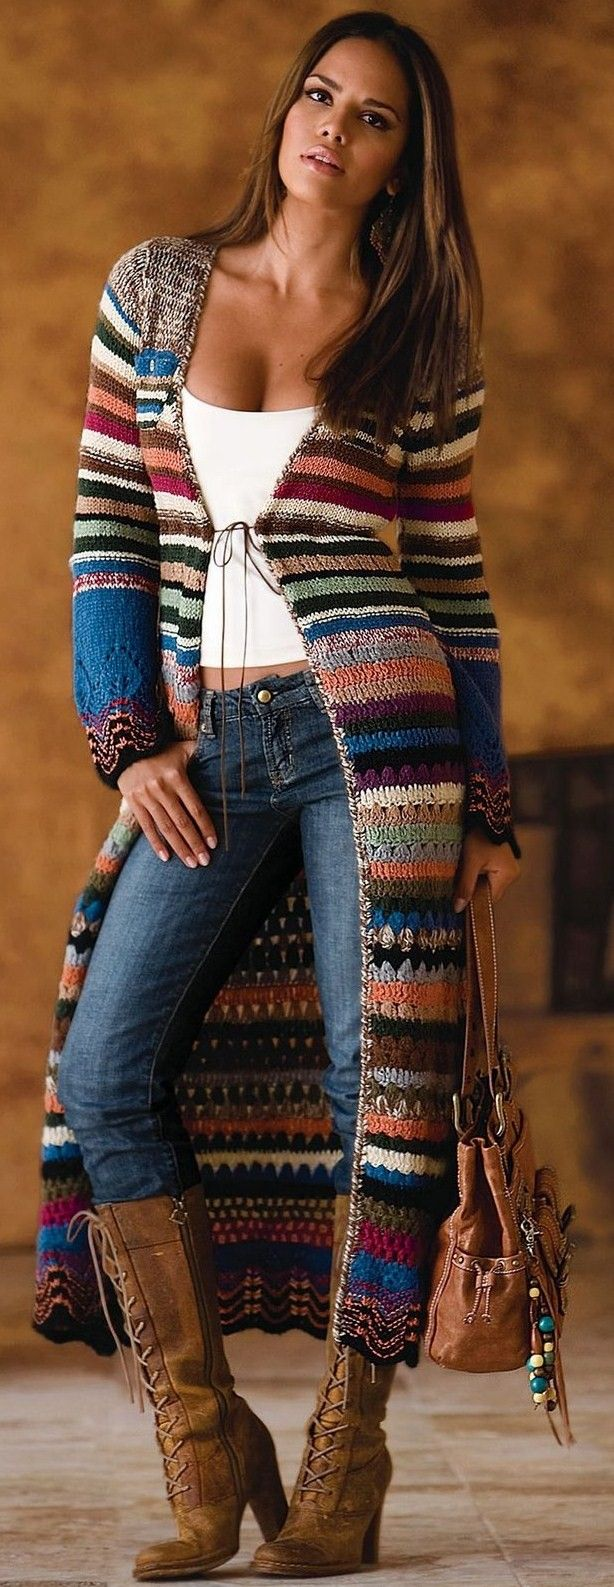 The striped crocheted coat in boho or jeans style…